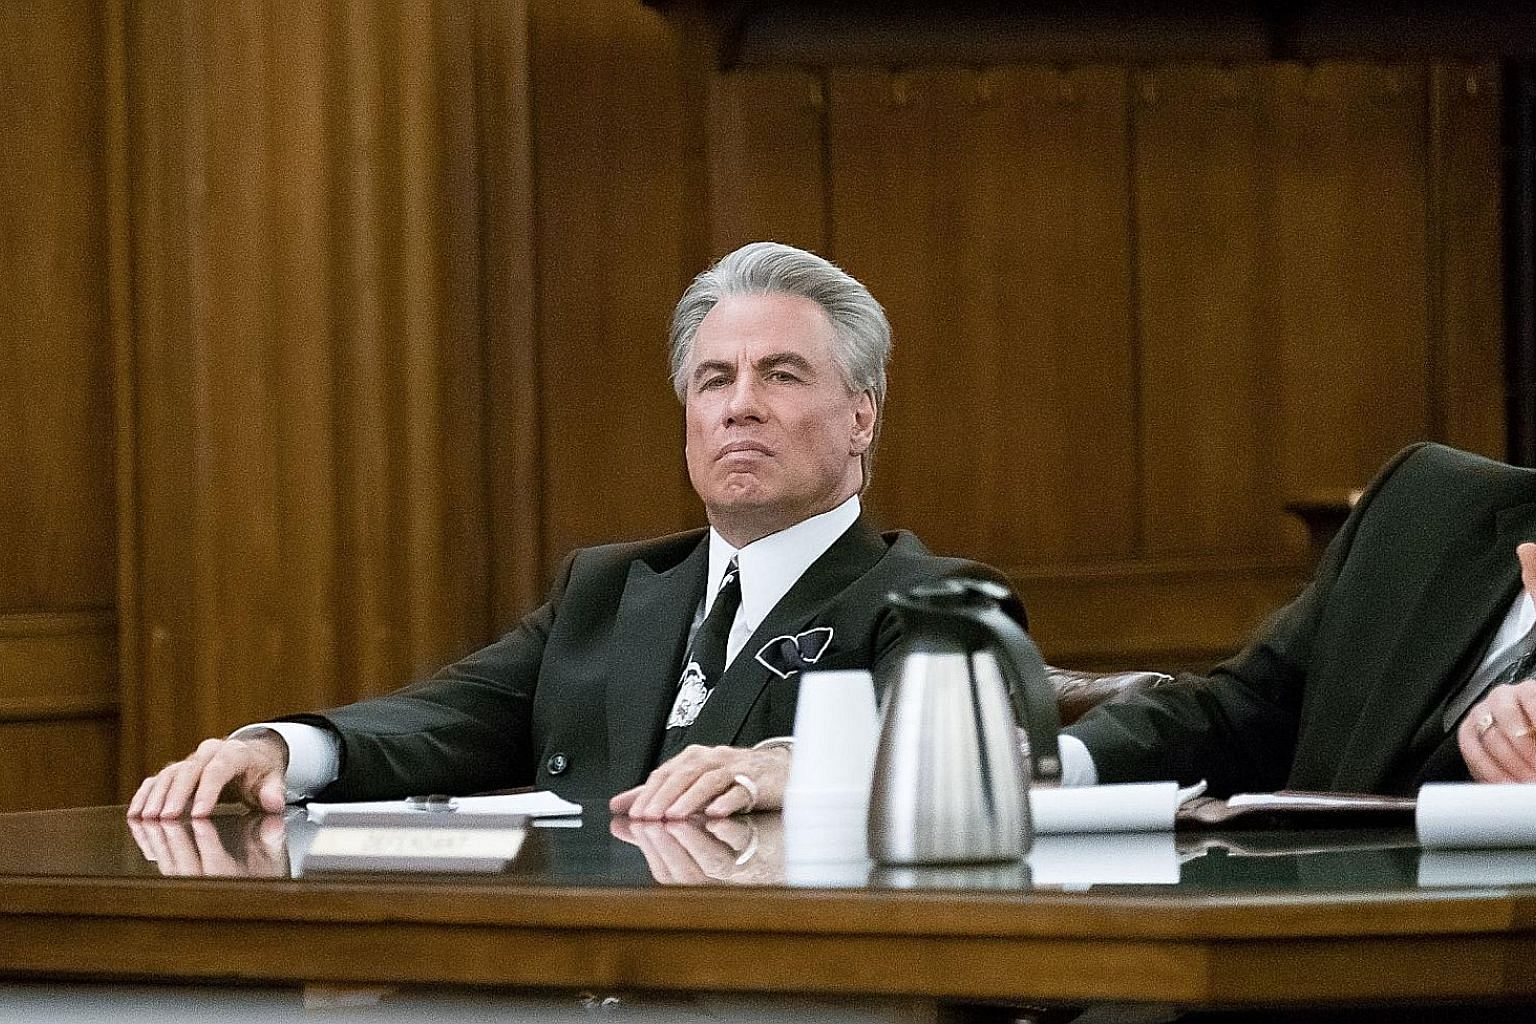 The biopic of John Gotti (John Travolta, above) begins near the end of the mob boss' life.